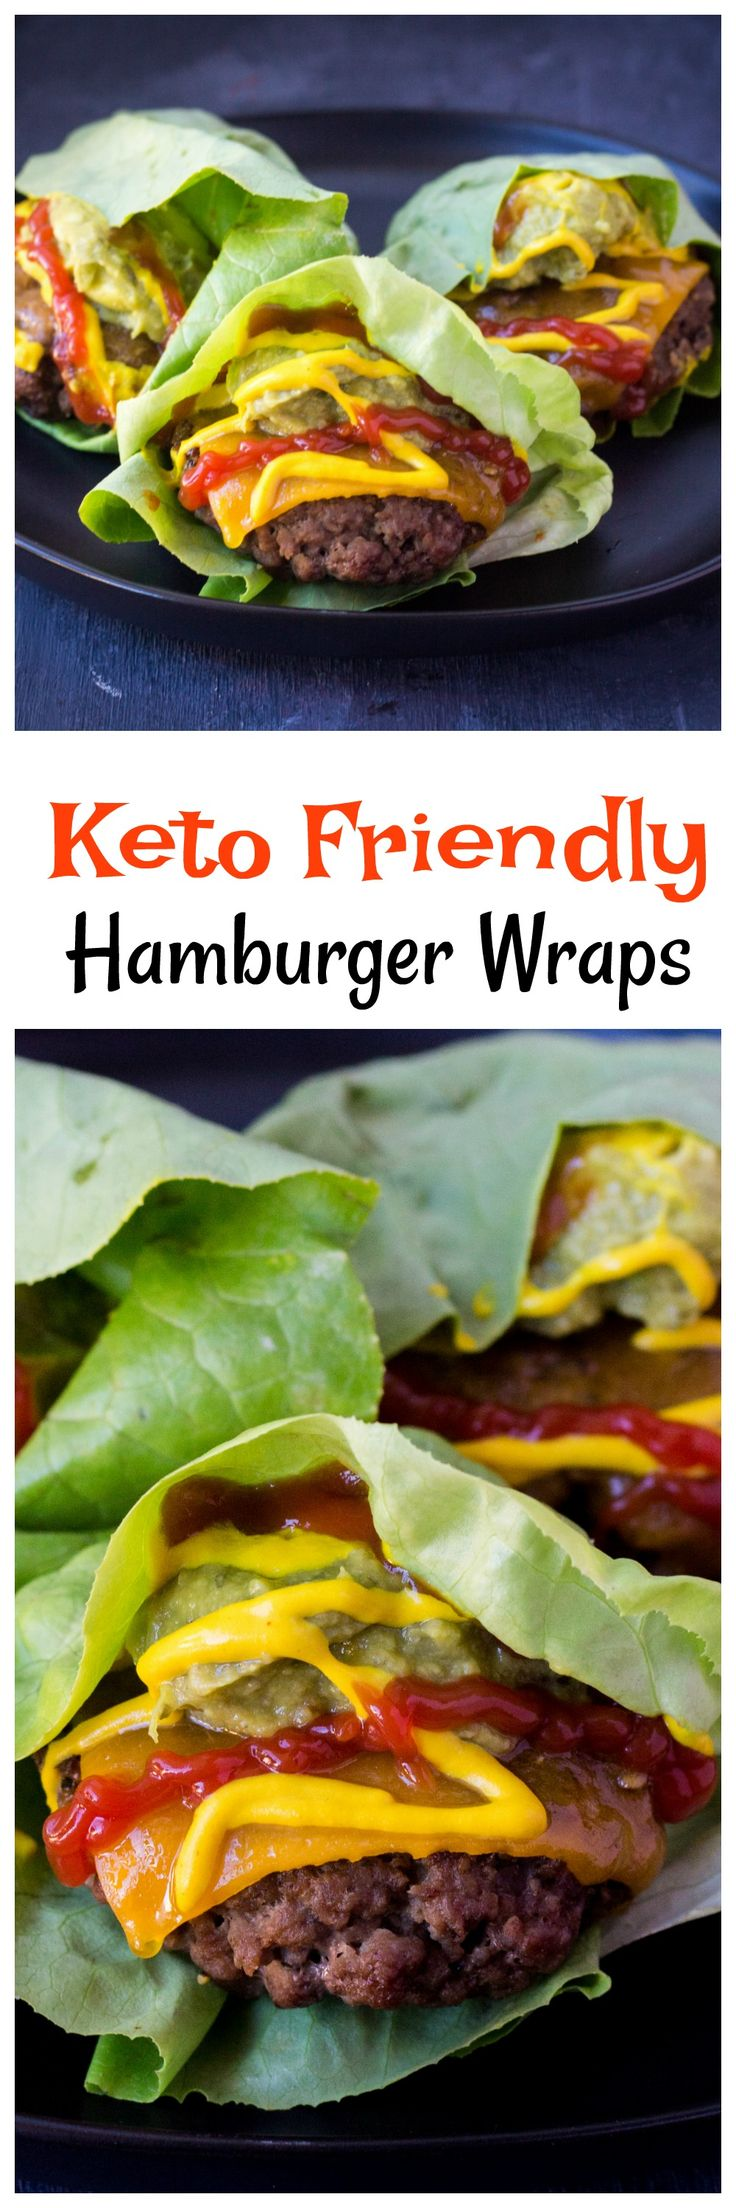 These Hamburger Lettuce Wraps are totally Keto Friendly and perfect for if you are looking for an amazing hamburger while on the Keto diet. Easy to make Hamburger Lettuce Wraps.